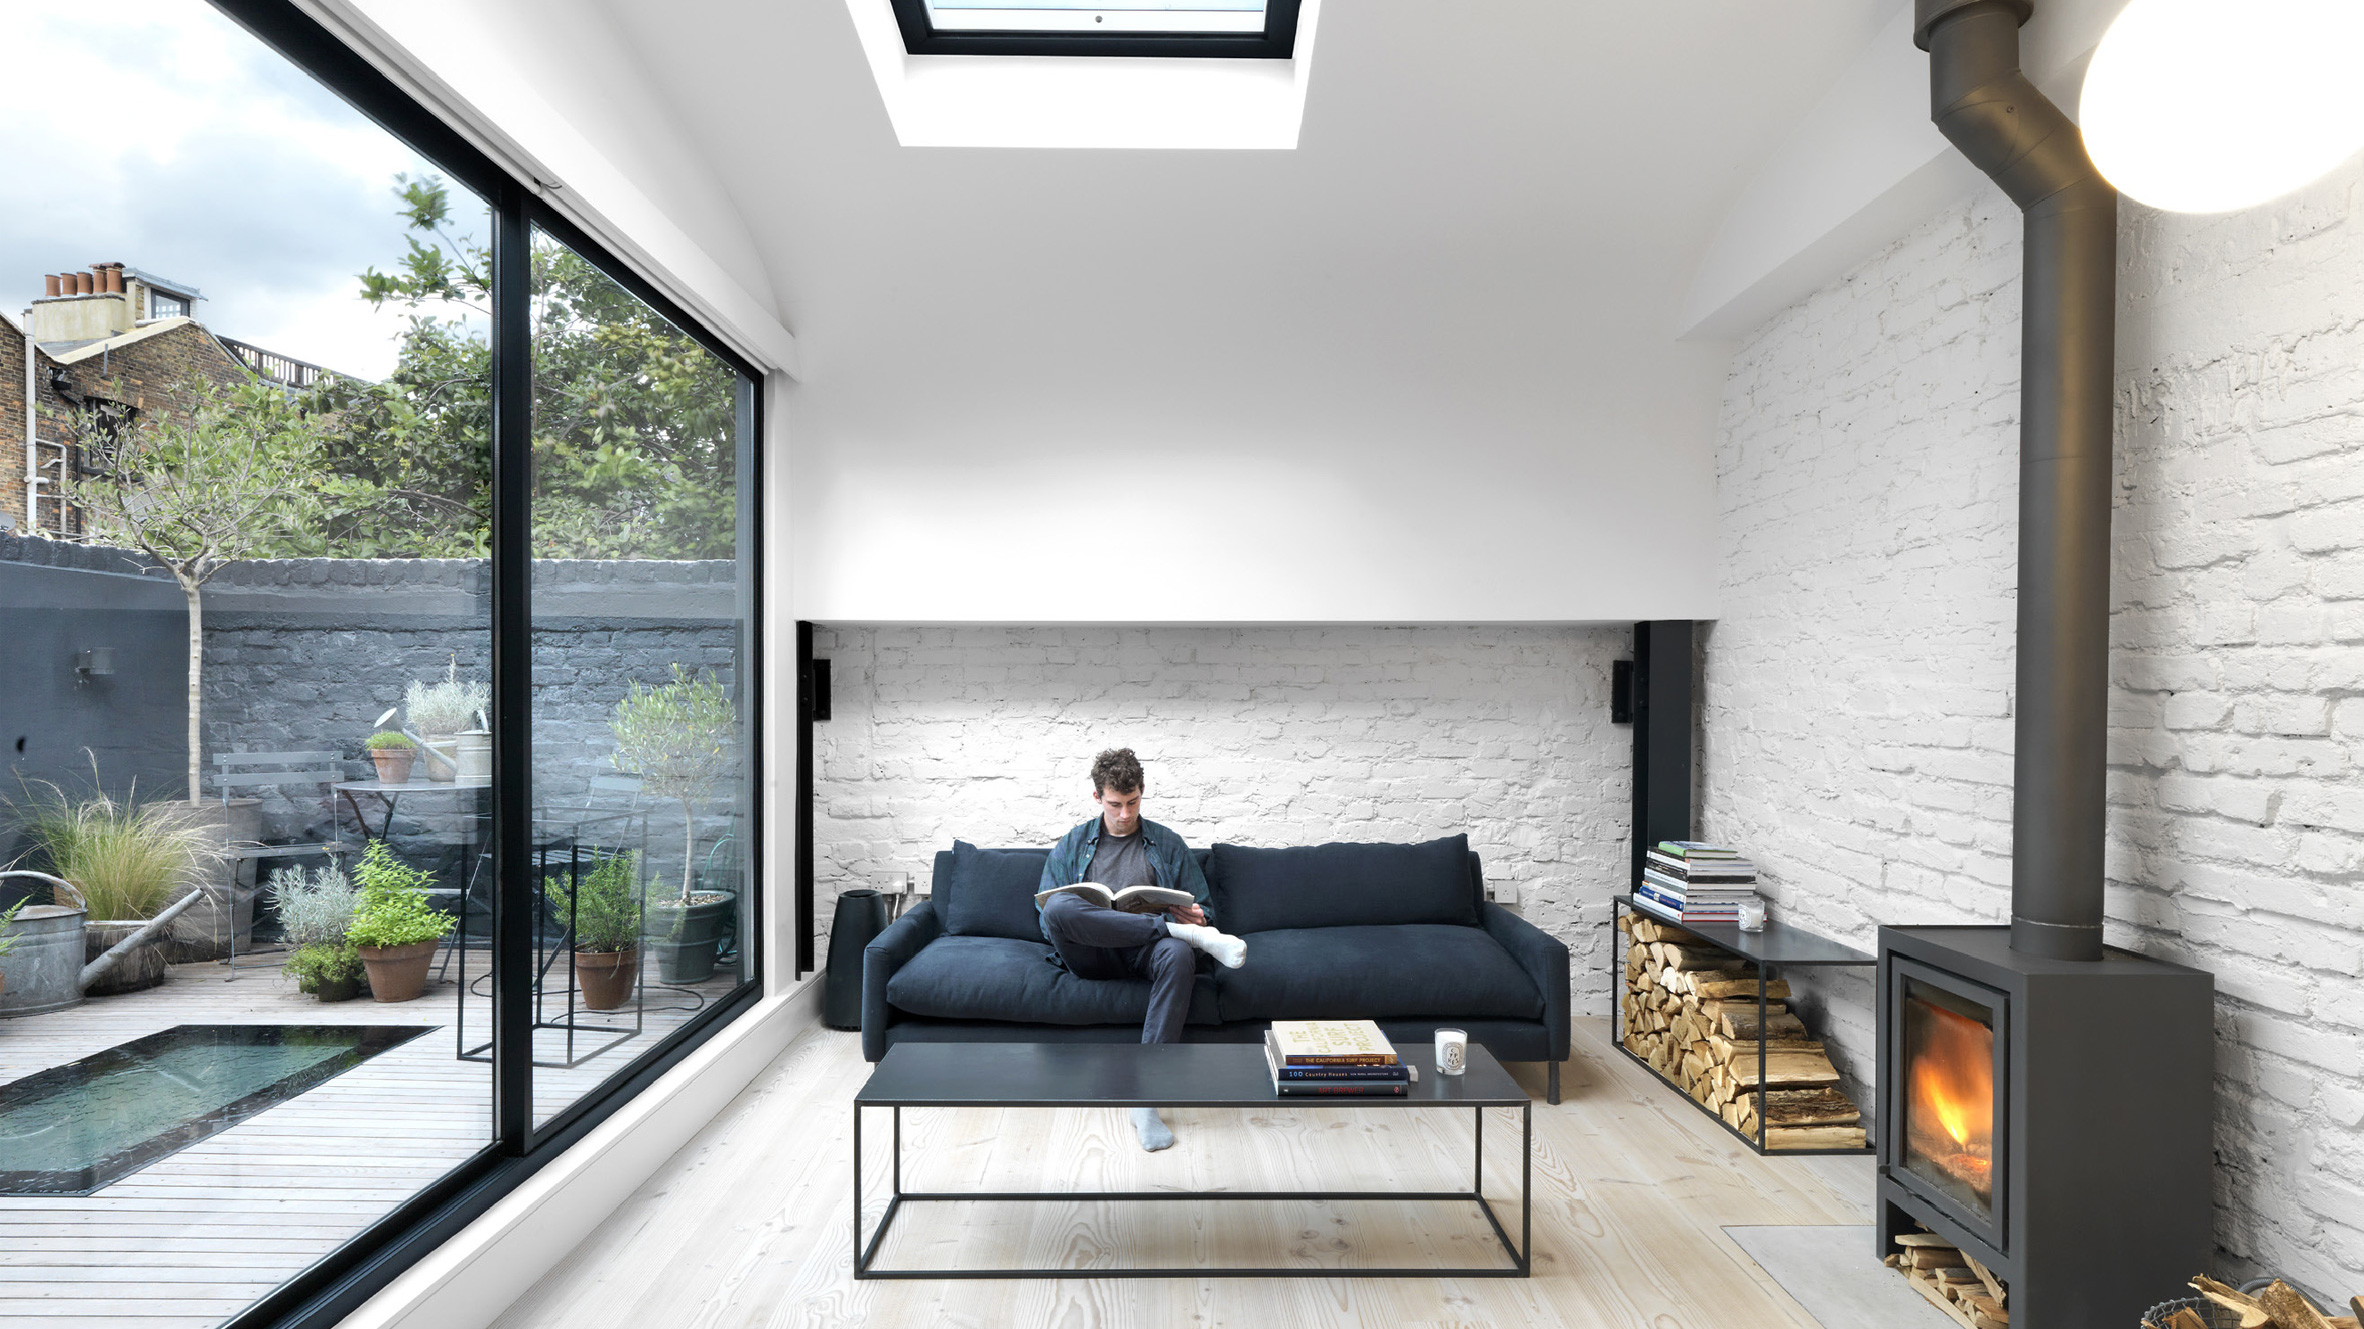 Threefold architects updates london mews house with for London house interior design